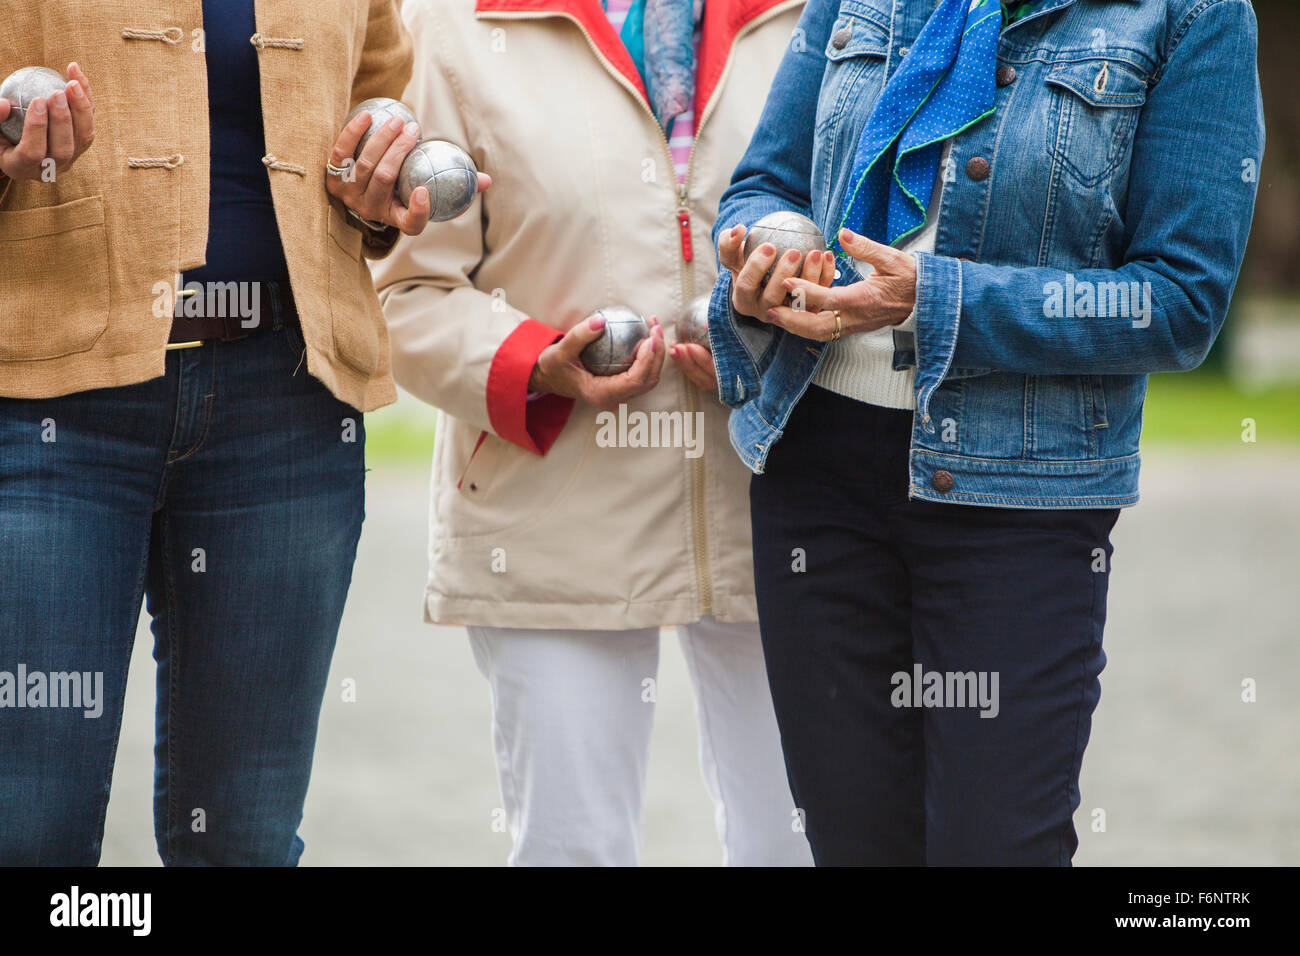 Close-up of senior women holding balls and standing at field - Stock Image